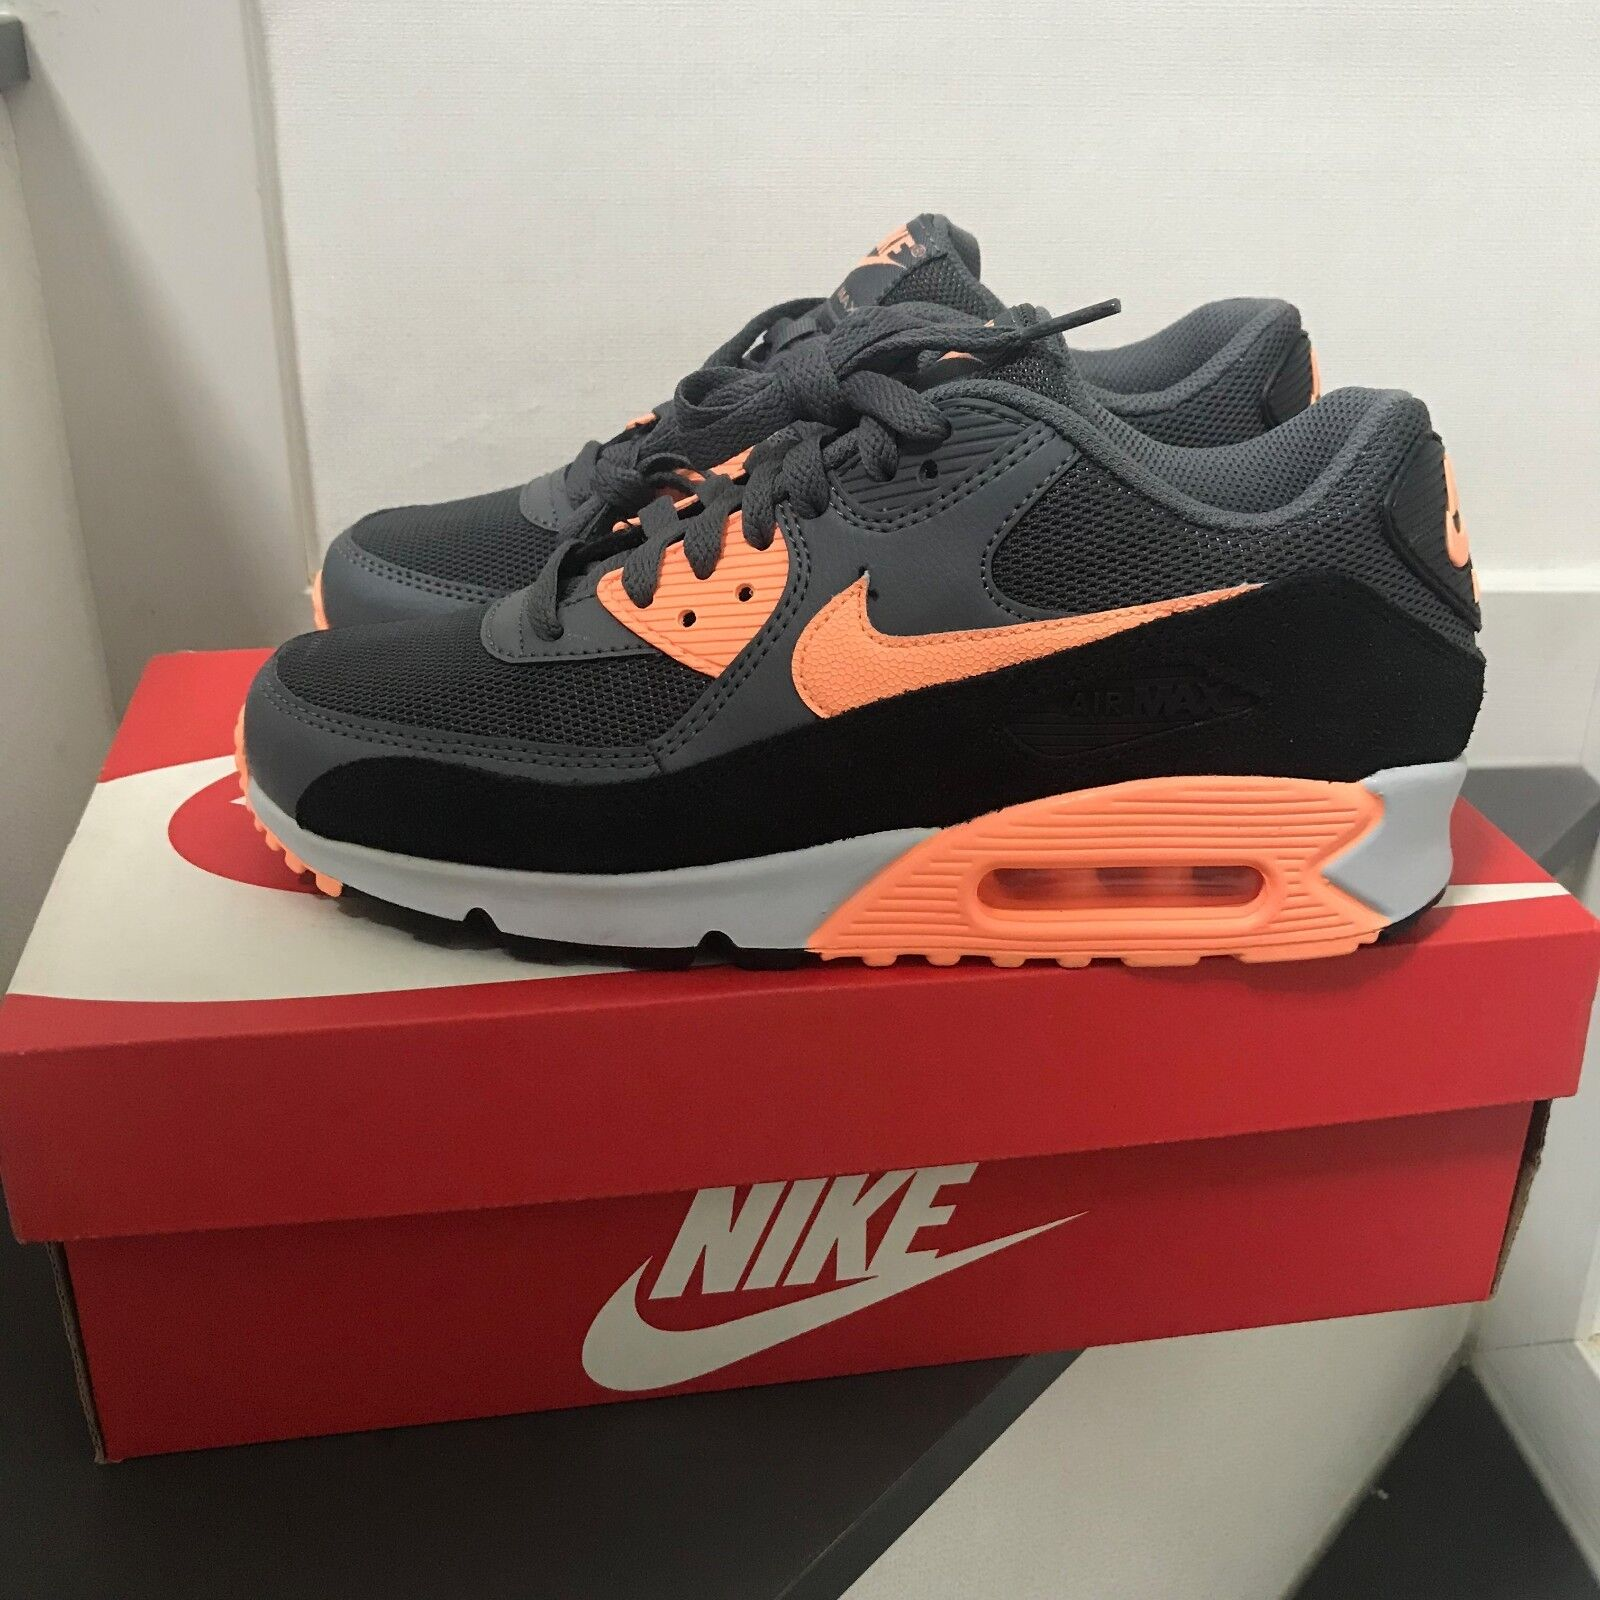 Nike AIR MAX 90 ESSENTIAL Sneakers shoes 631744-103 Women's Size 8.5